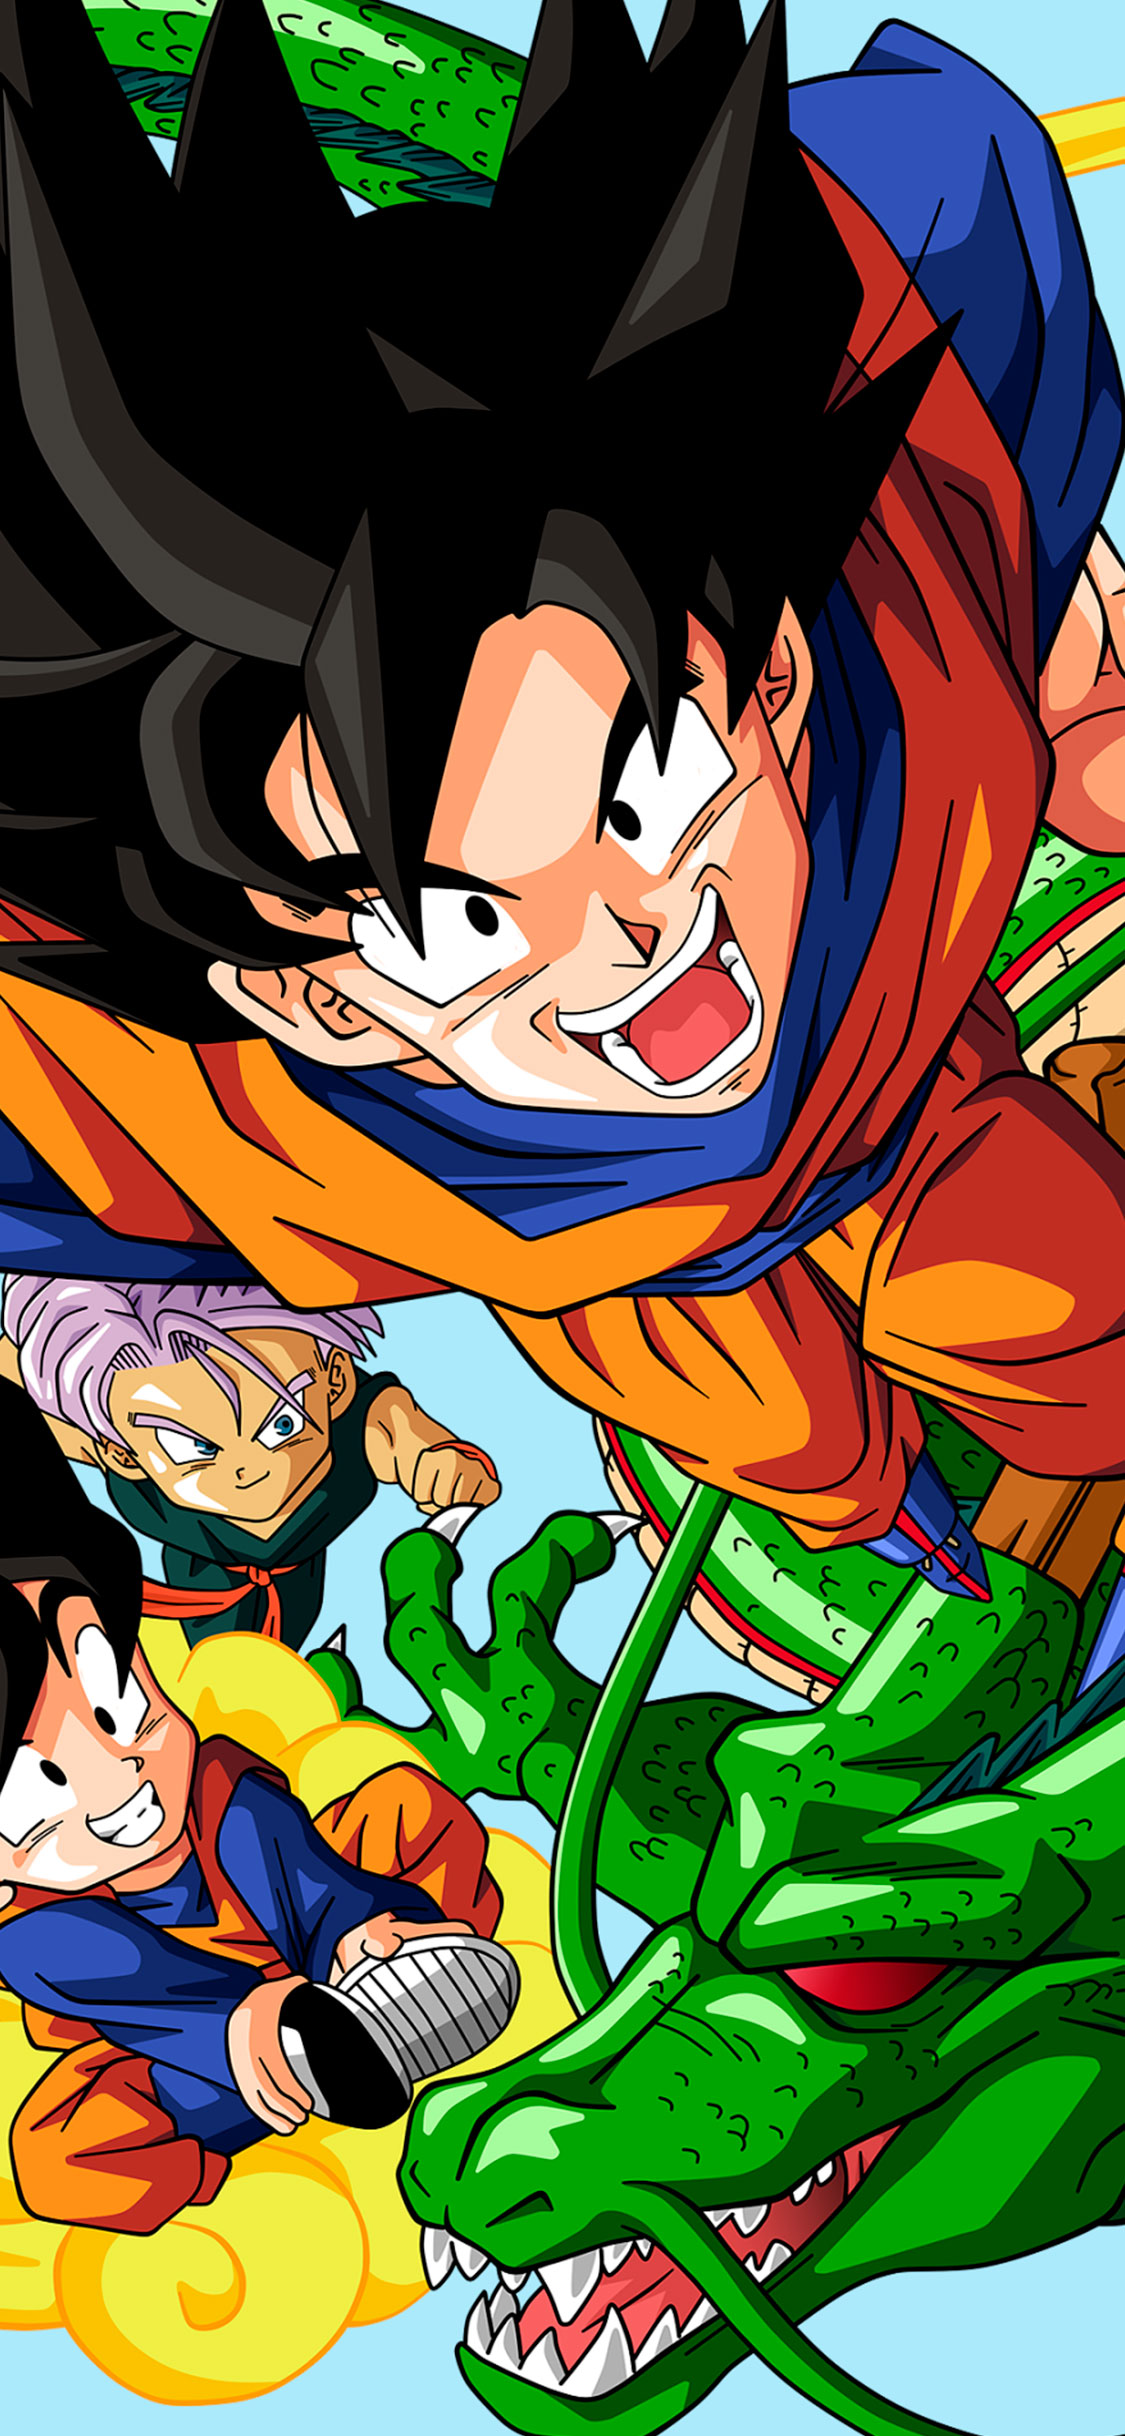 iPhone wallpaper dragon ball shenglong Fonds d'écran iPhone du 11/05/2018